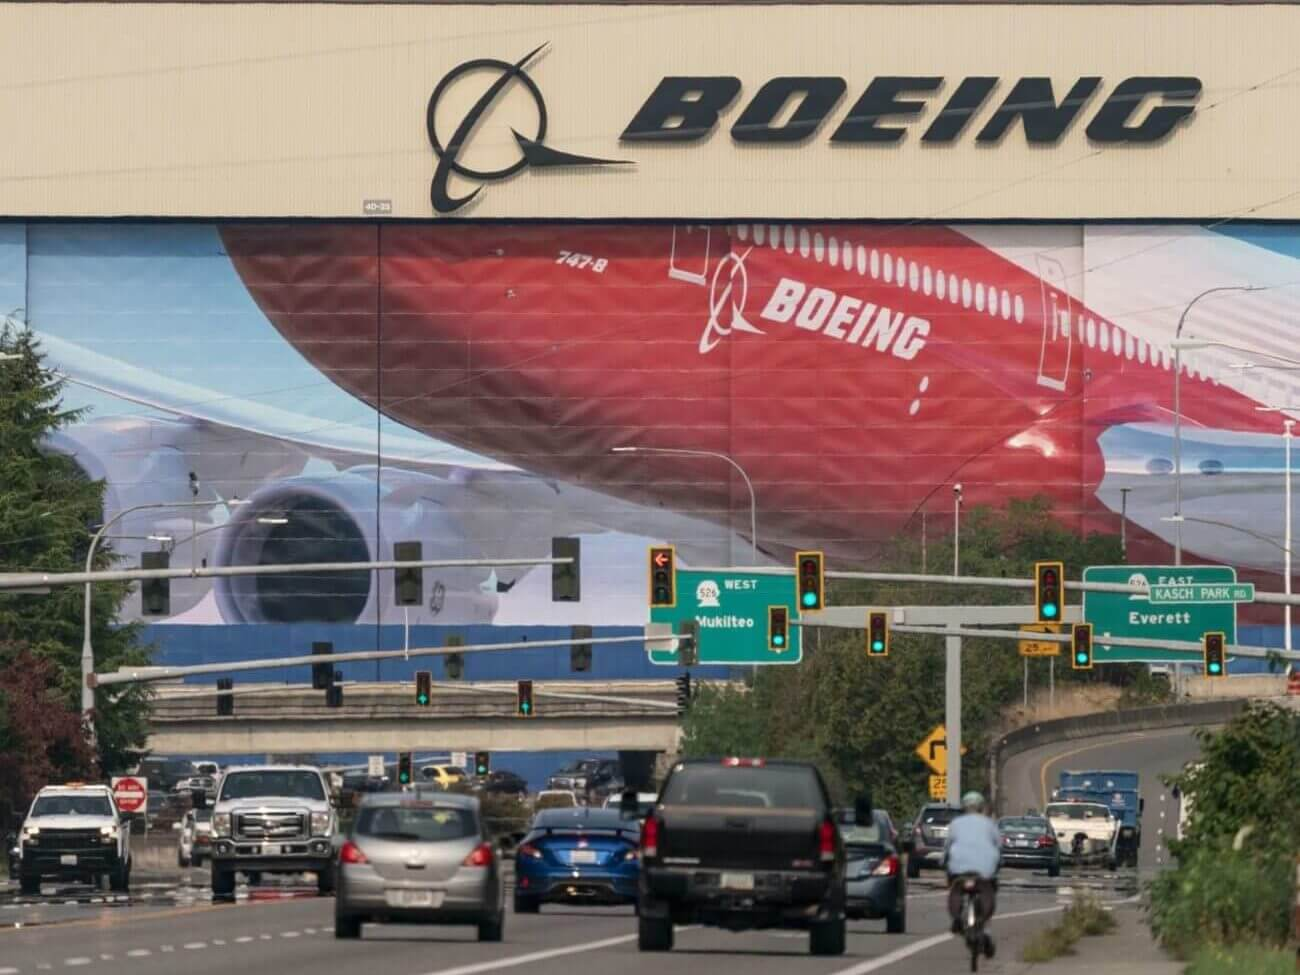 Boeing Is the Most up-to-date Company to Secure away a Hostile Industry Atmosphere